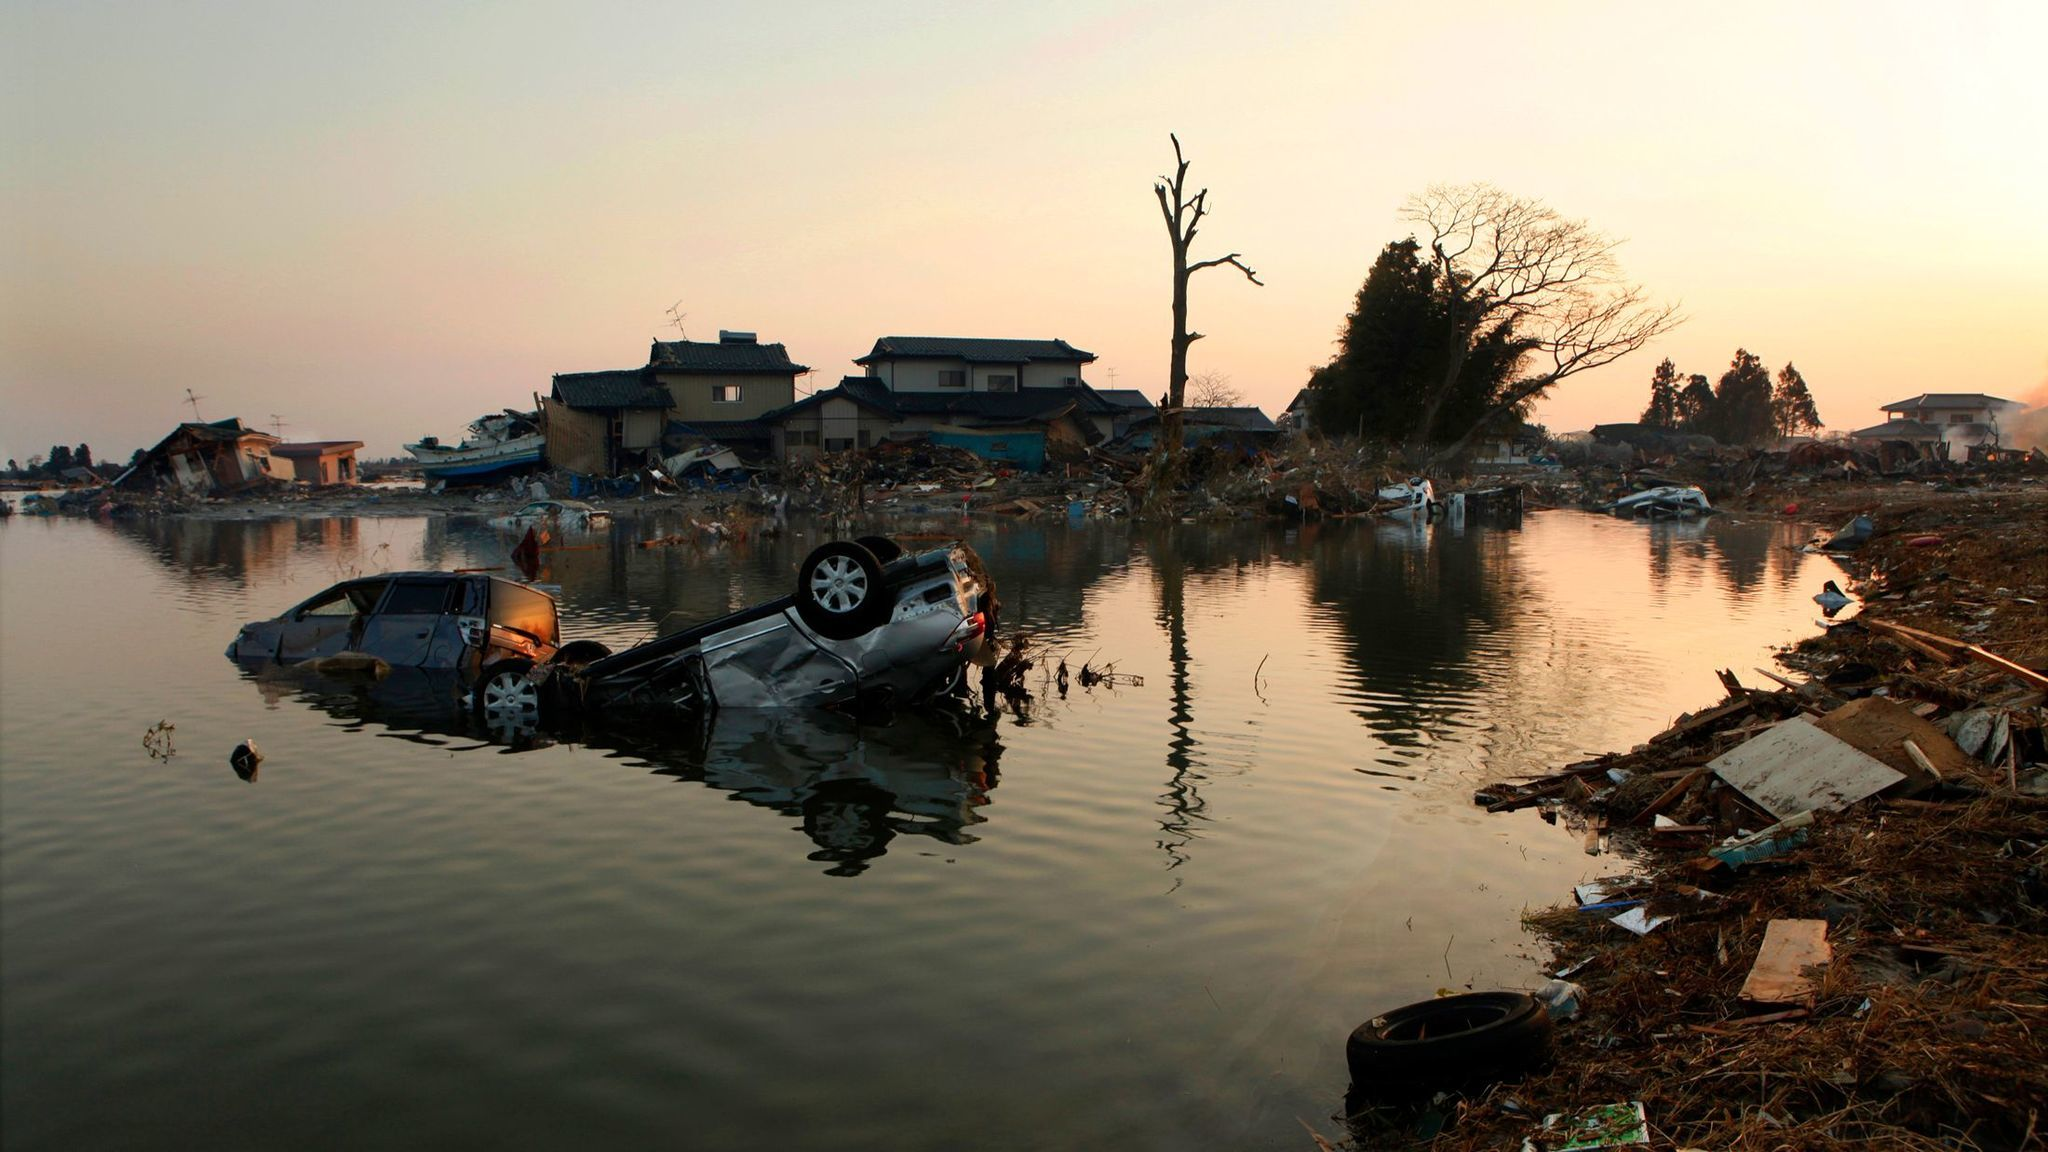 The Natori area of the town of Sendai was destroyed by the earthquake and tsunami that followed in 2011.